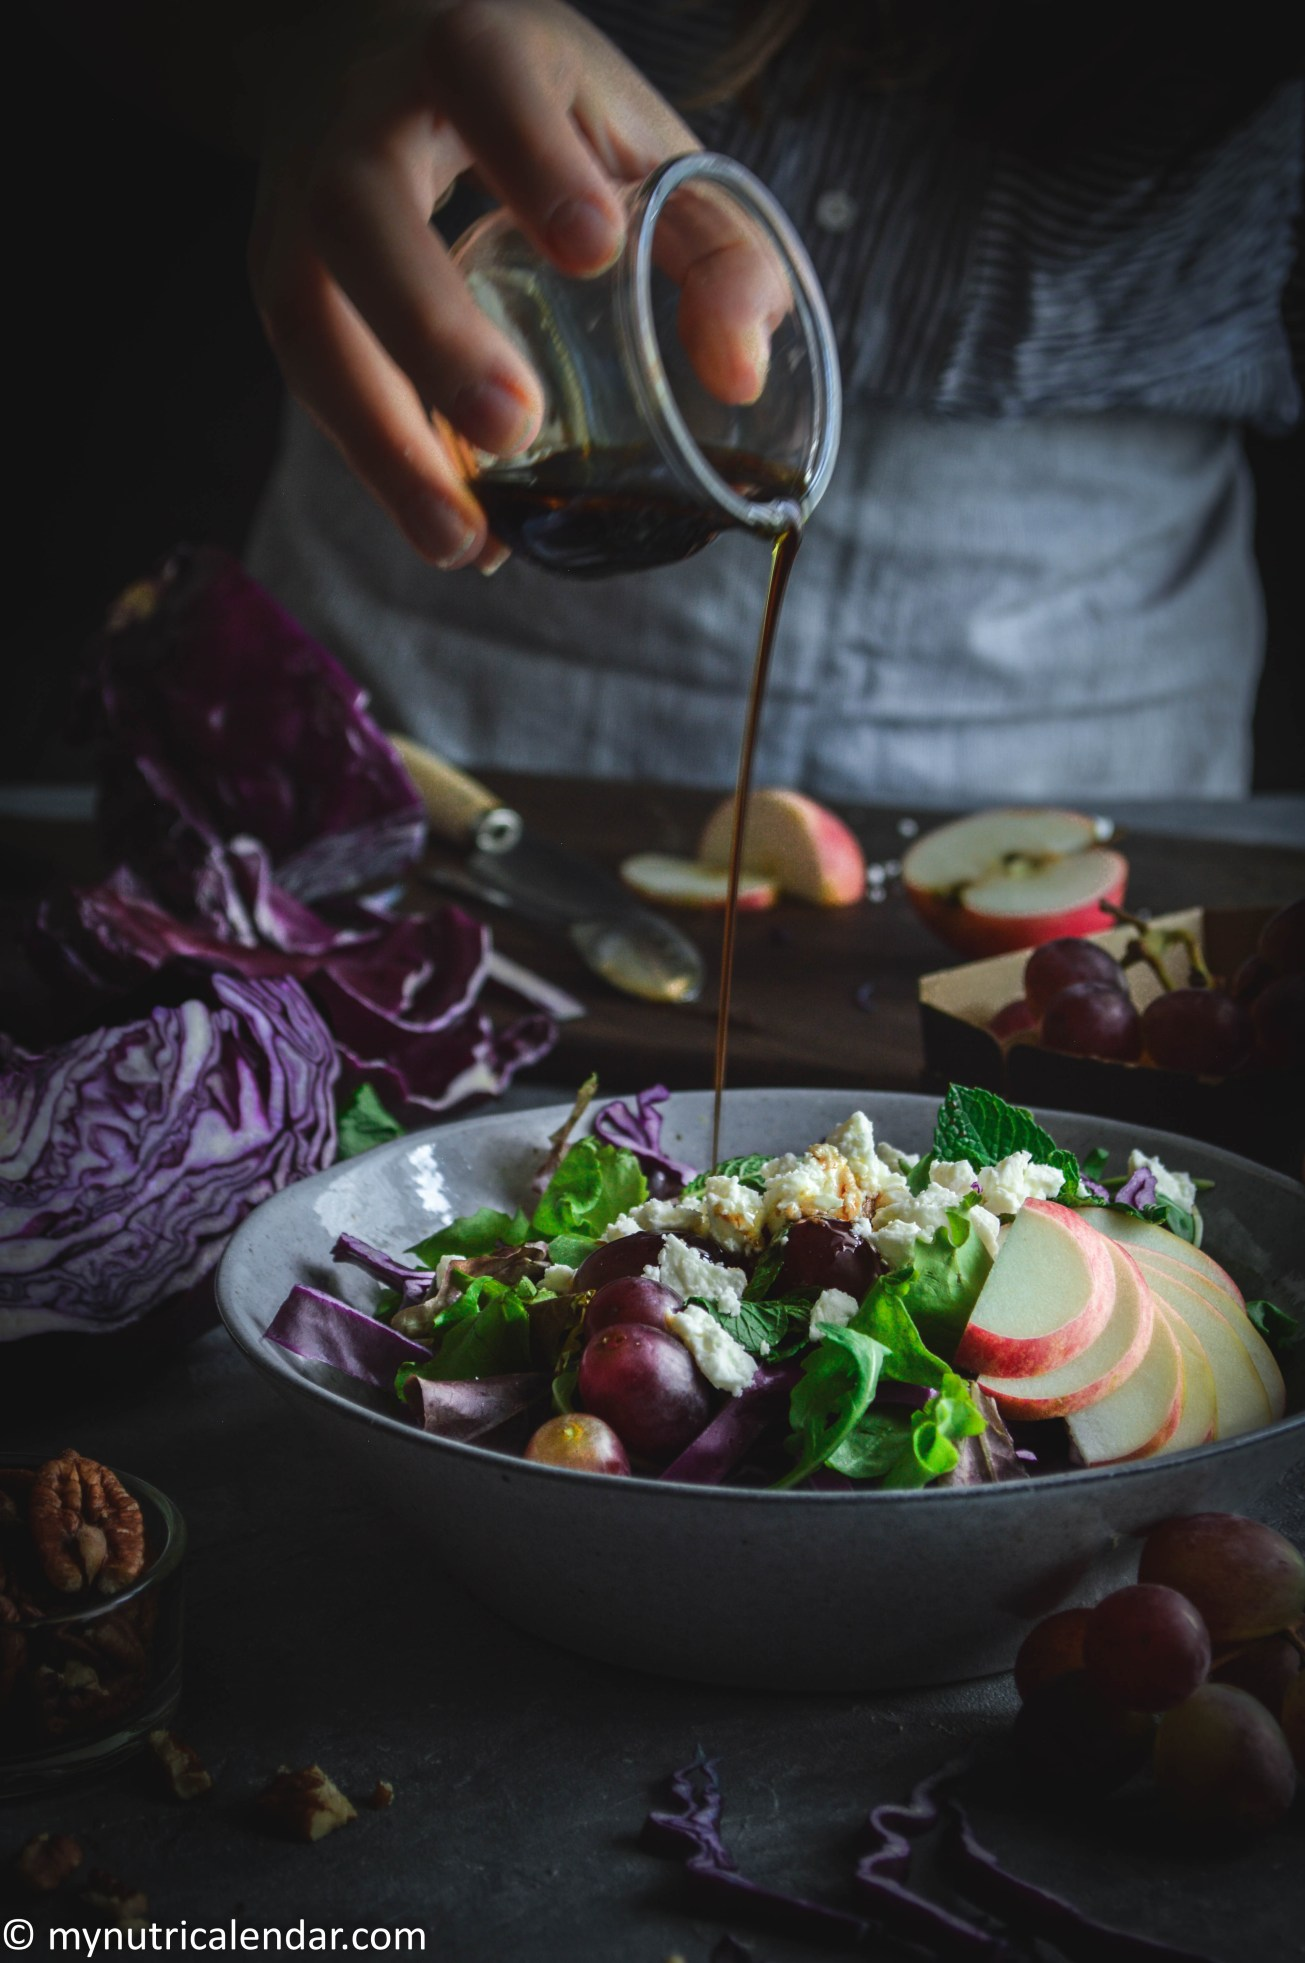 red-cabbage-grapes-apple-mint-salad-seasonal-vegetables-autumn-produce-food-photography-moody-story-telling-6